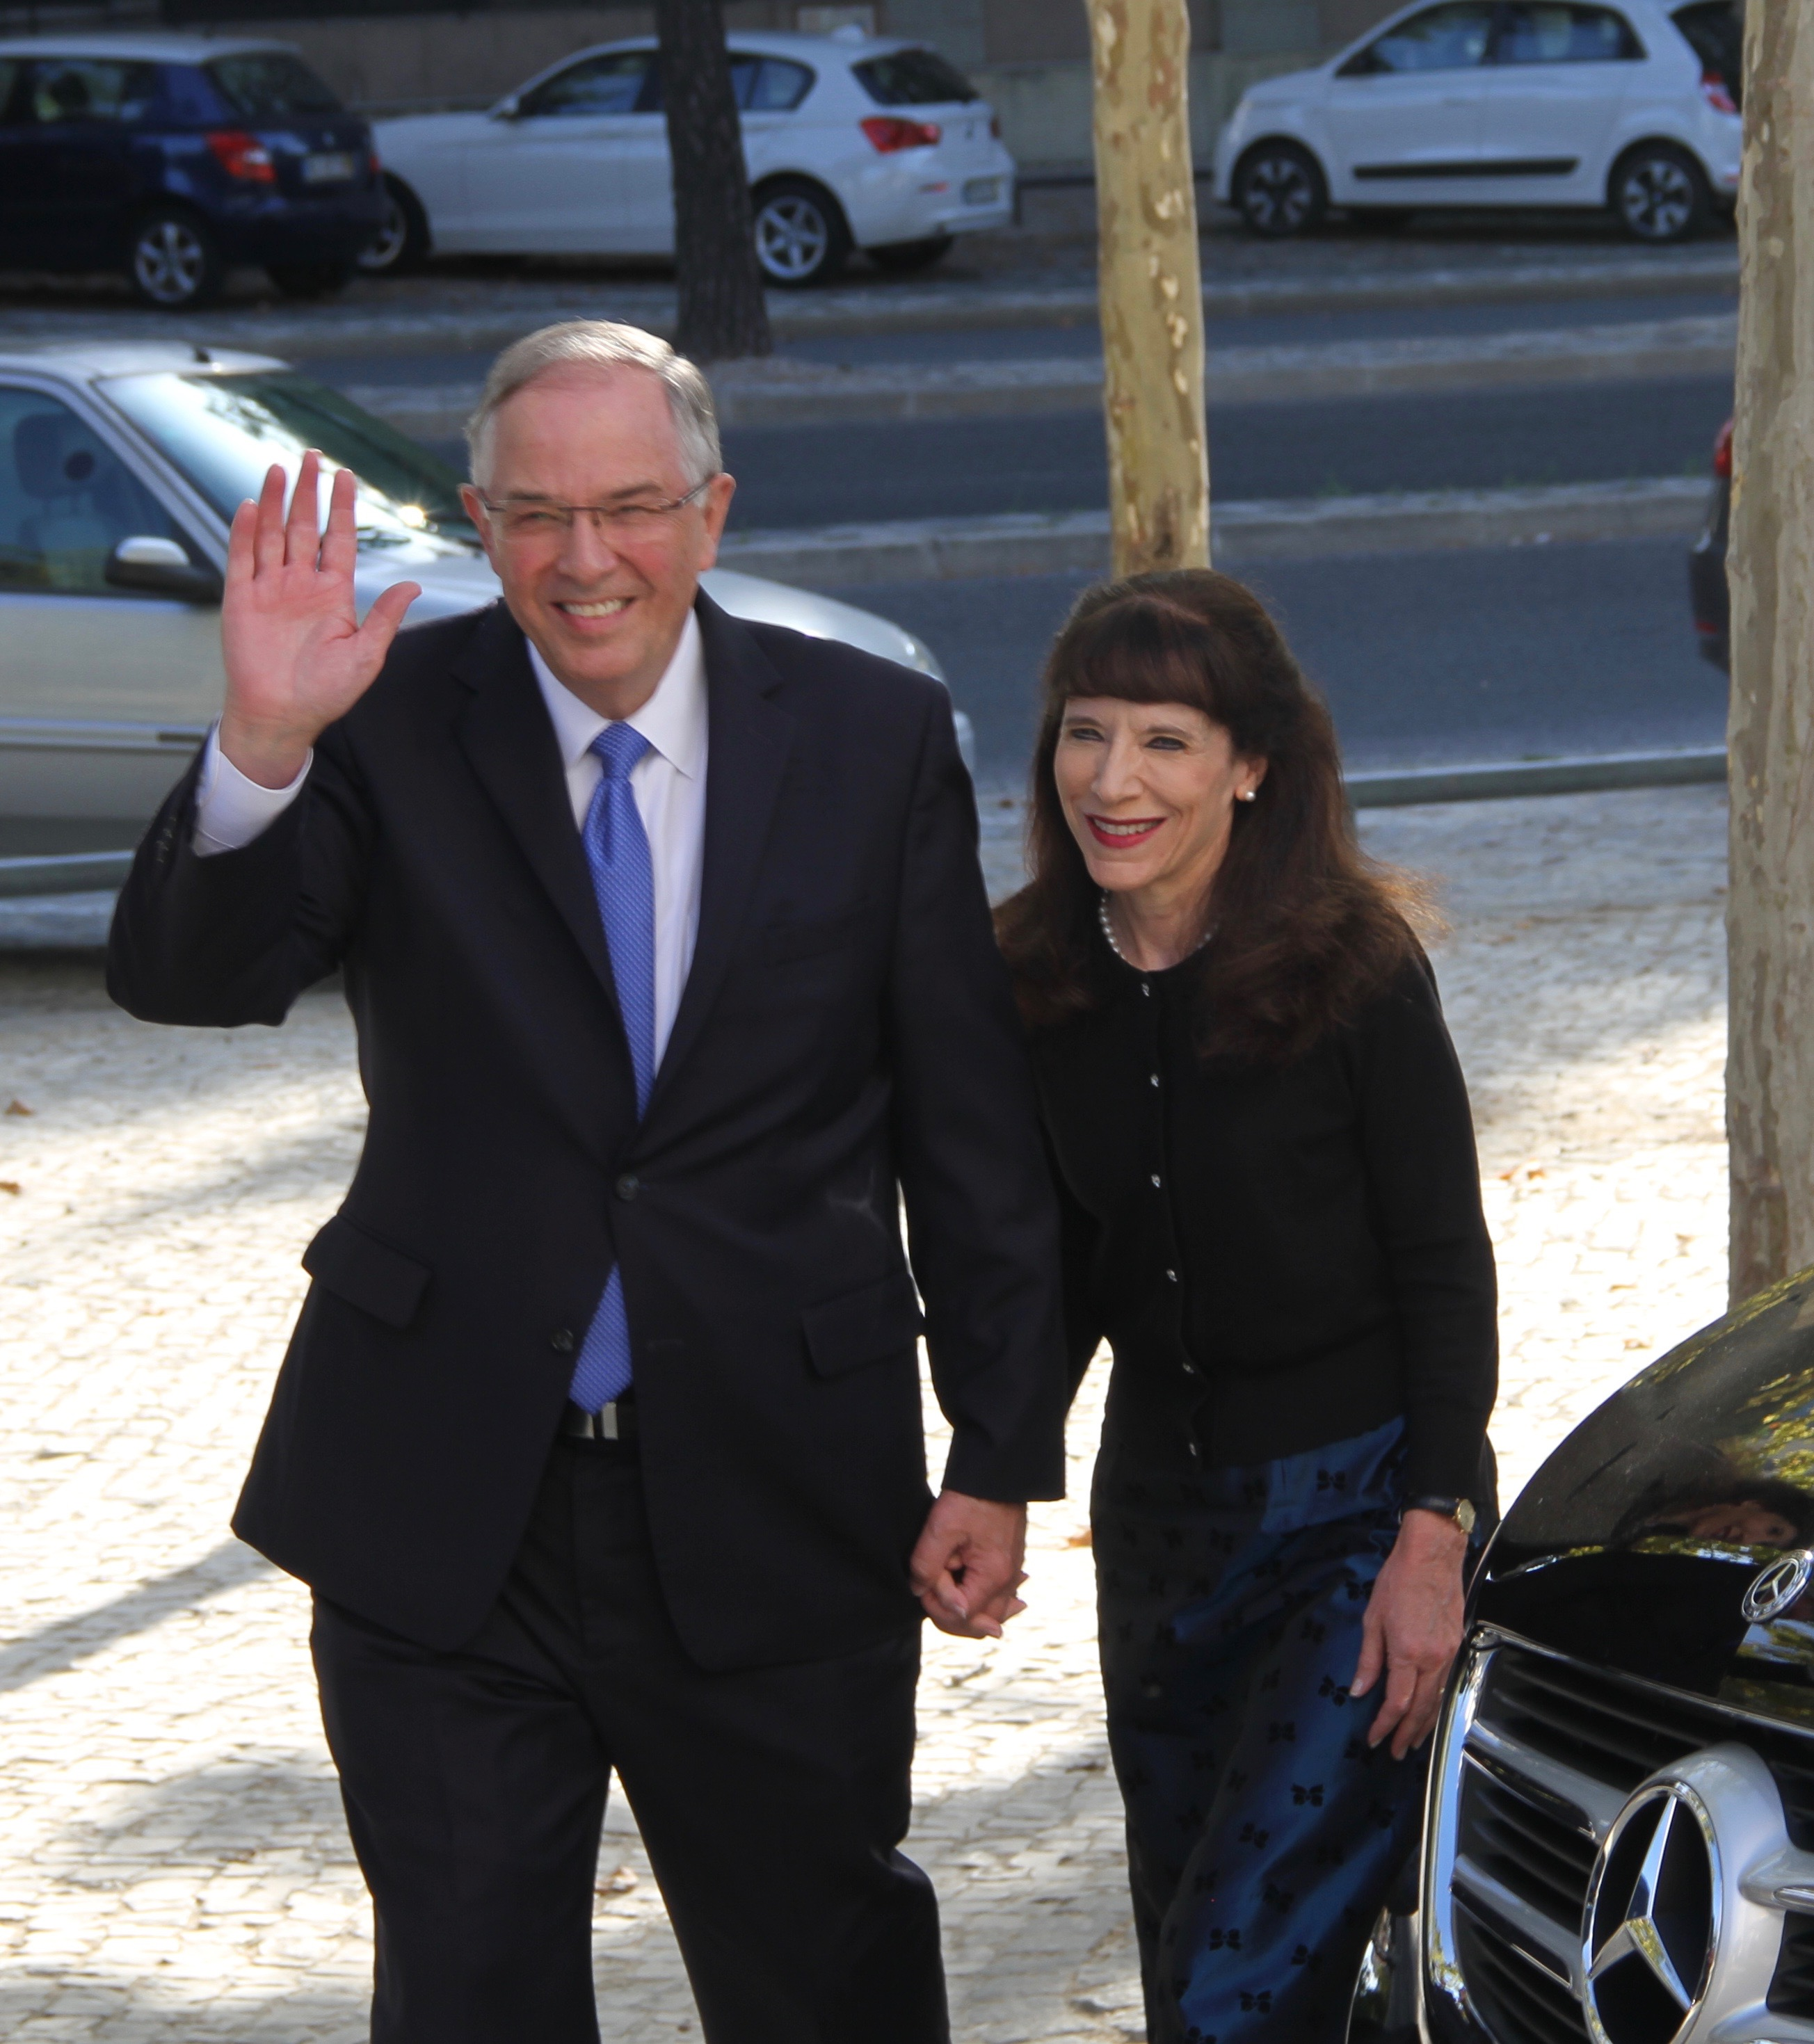 Elder Neil L. Andersen of the Quorum of the Twelve Apostles and his wife, Sister Kathy Andersen, arrive for a walk-through of the new Lisbon Portugal Temple on Saturday, Sept. 14, 2019, in Lisbon.